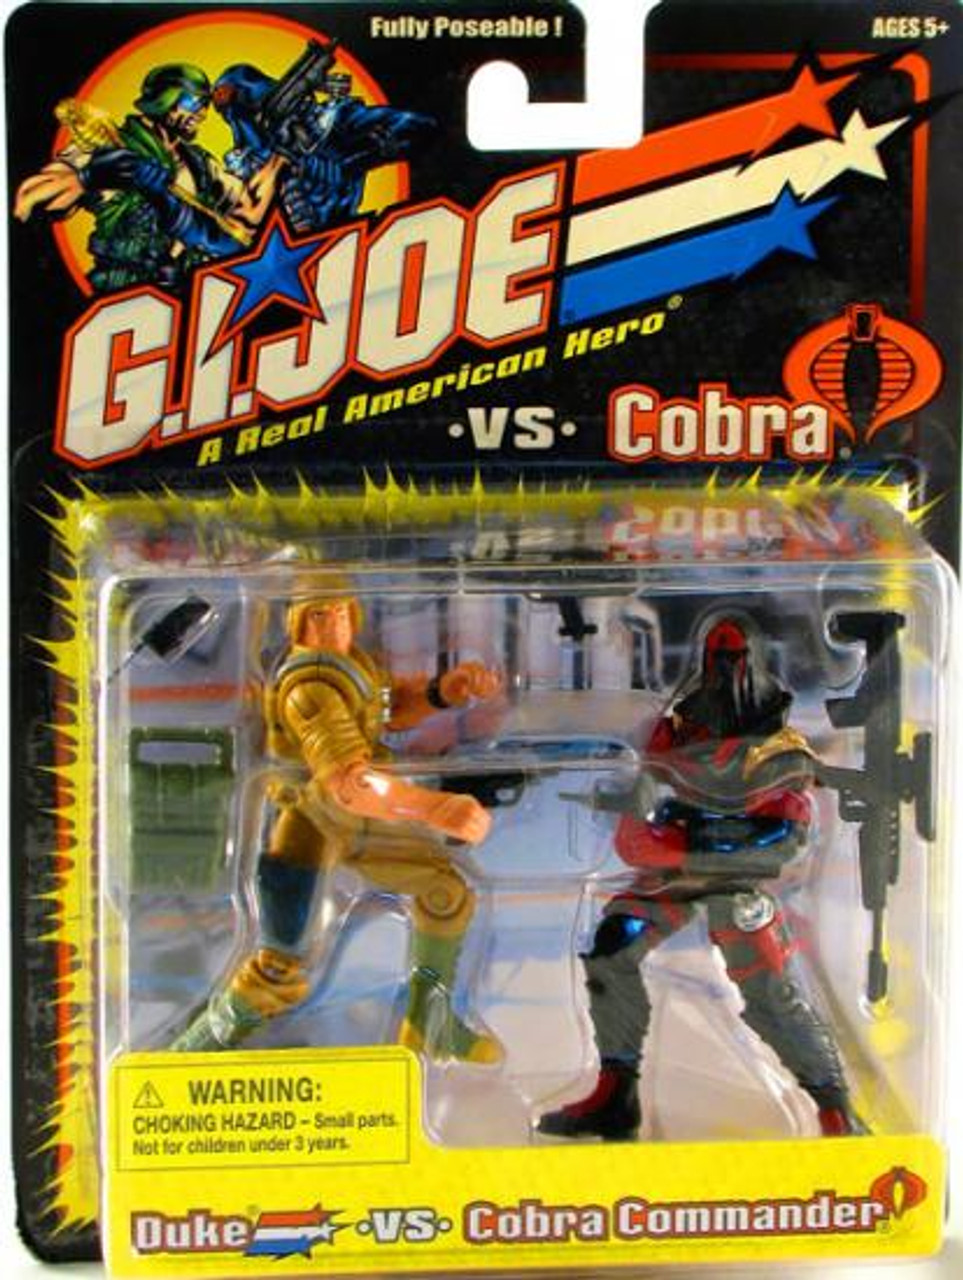 GI Joe A Realm American Hero vs Cobra Duke vs. Cobra Commander Action Figure 2-Pack